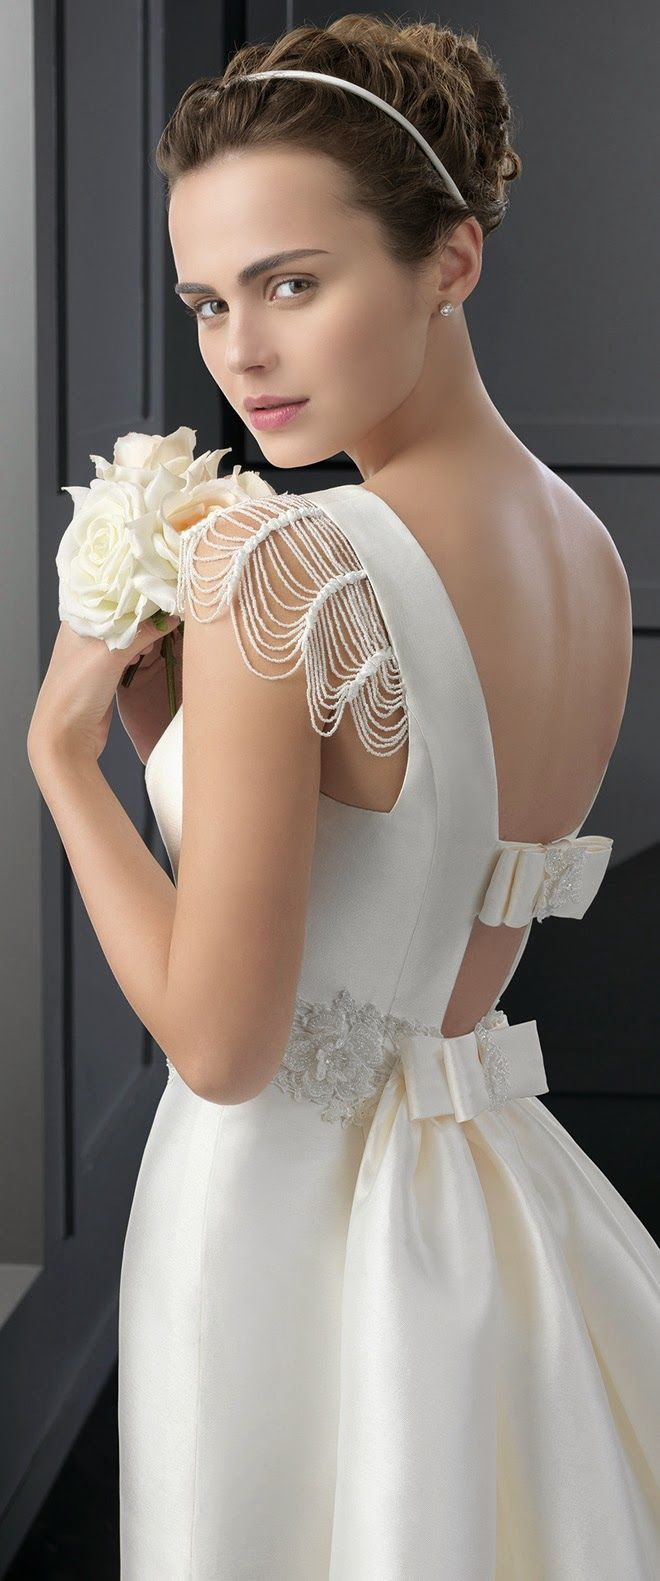 The best images about wedding gowns on pinterest lace gowns